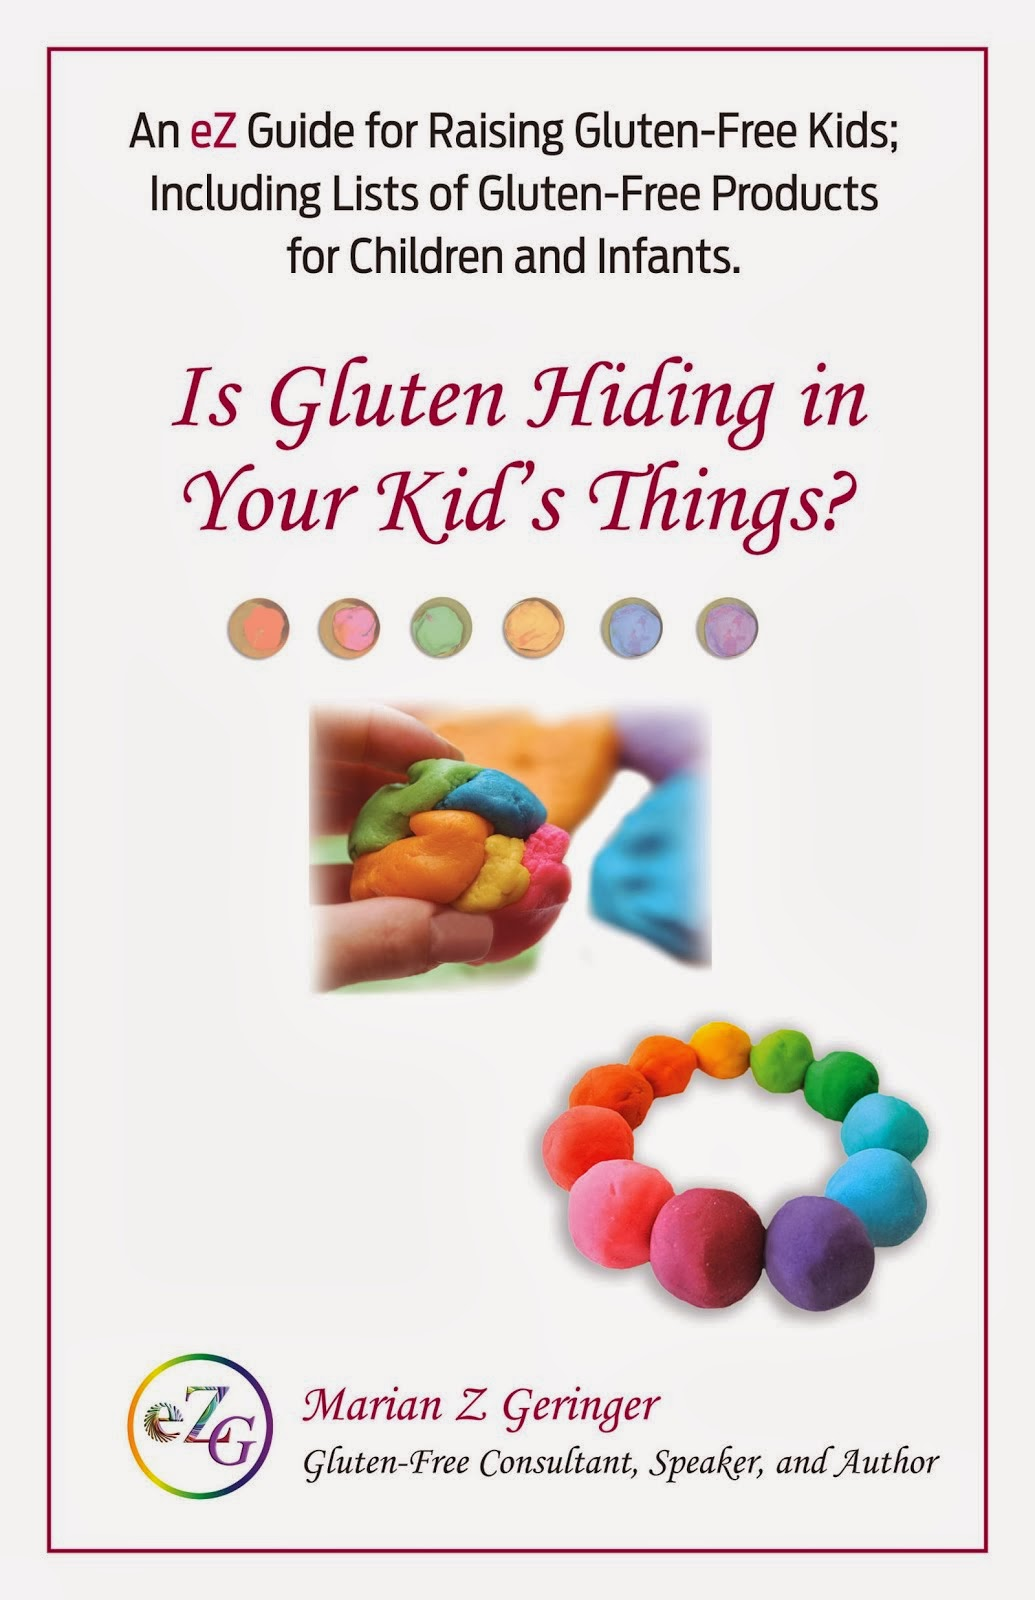 Is Gluten Hiding in Your Kid's Things?